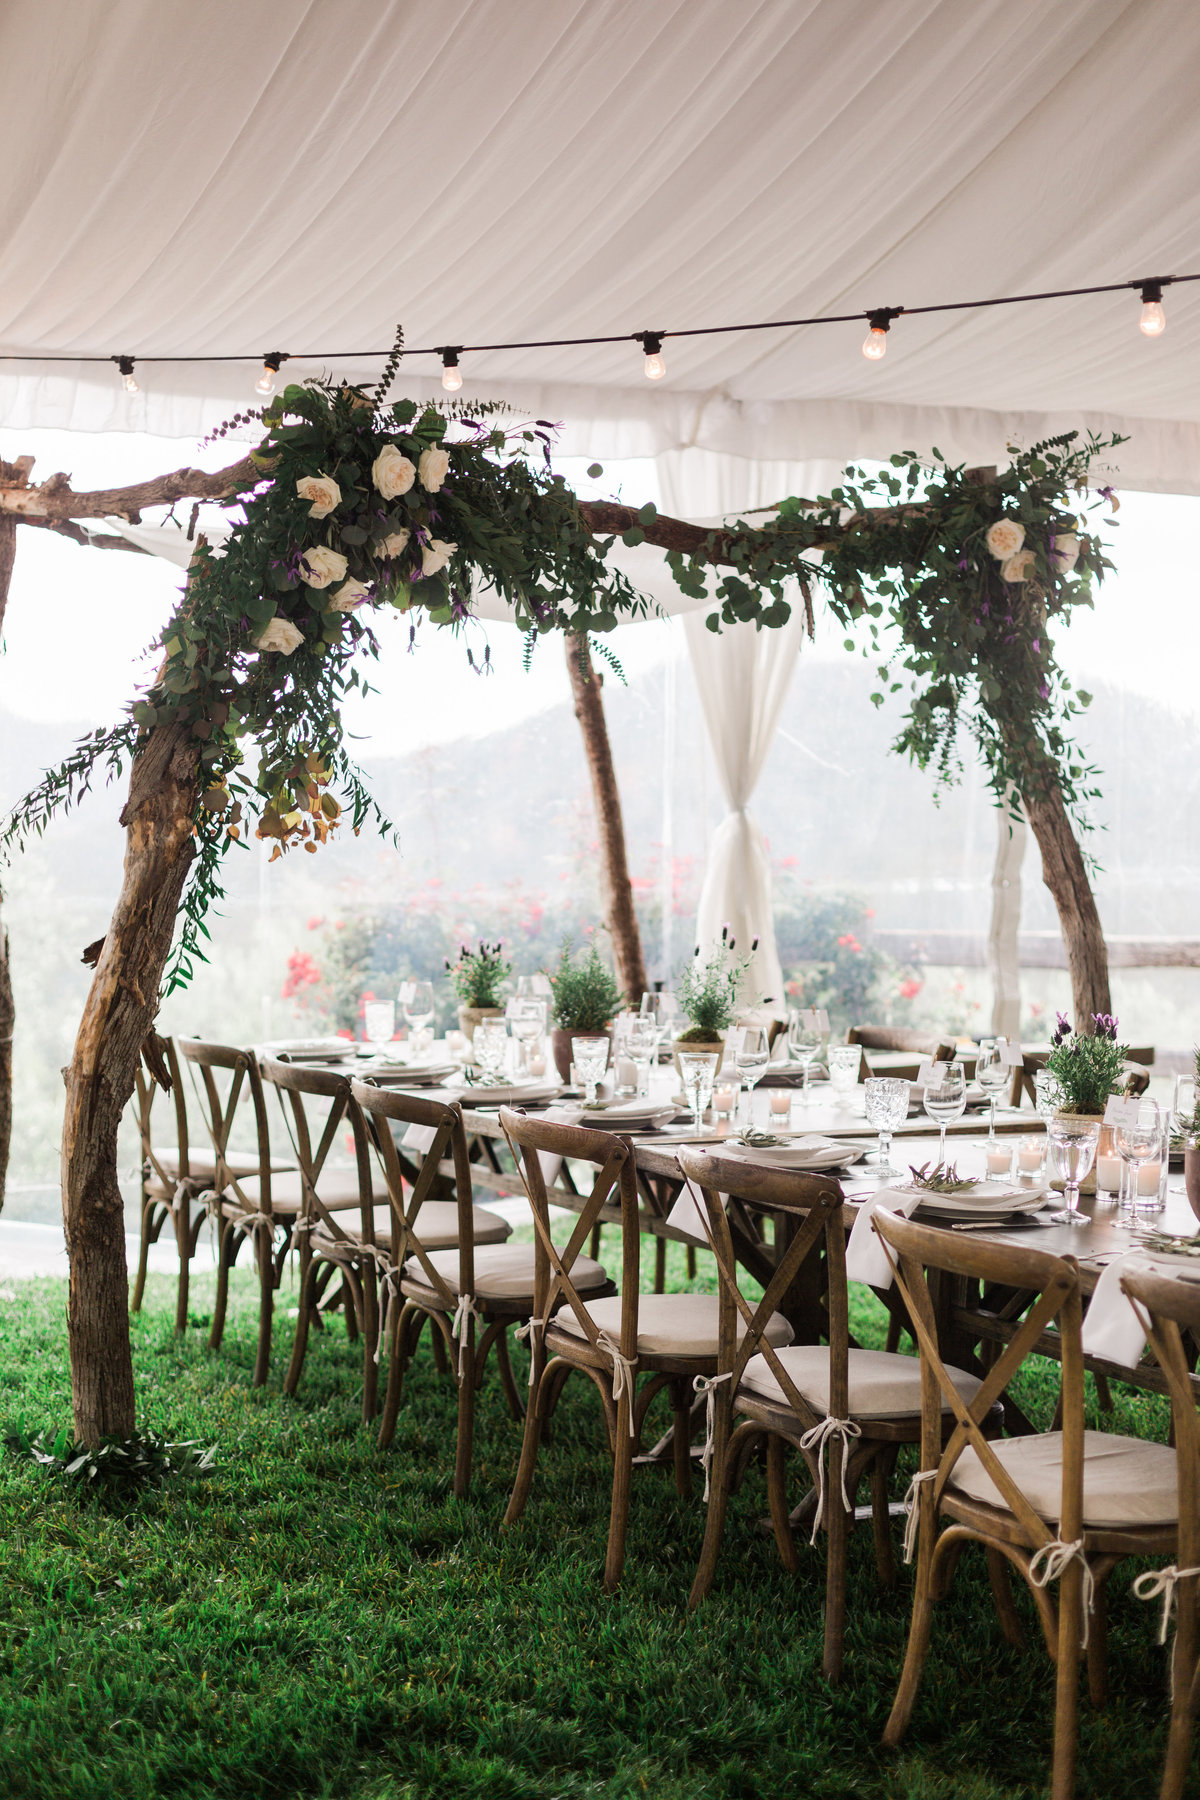 Palihouse_Cielo_Farms_Malibu_Rustic_Wedding_Valorie_Darling_Photography - 91 of 107